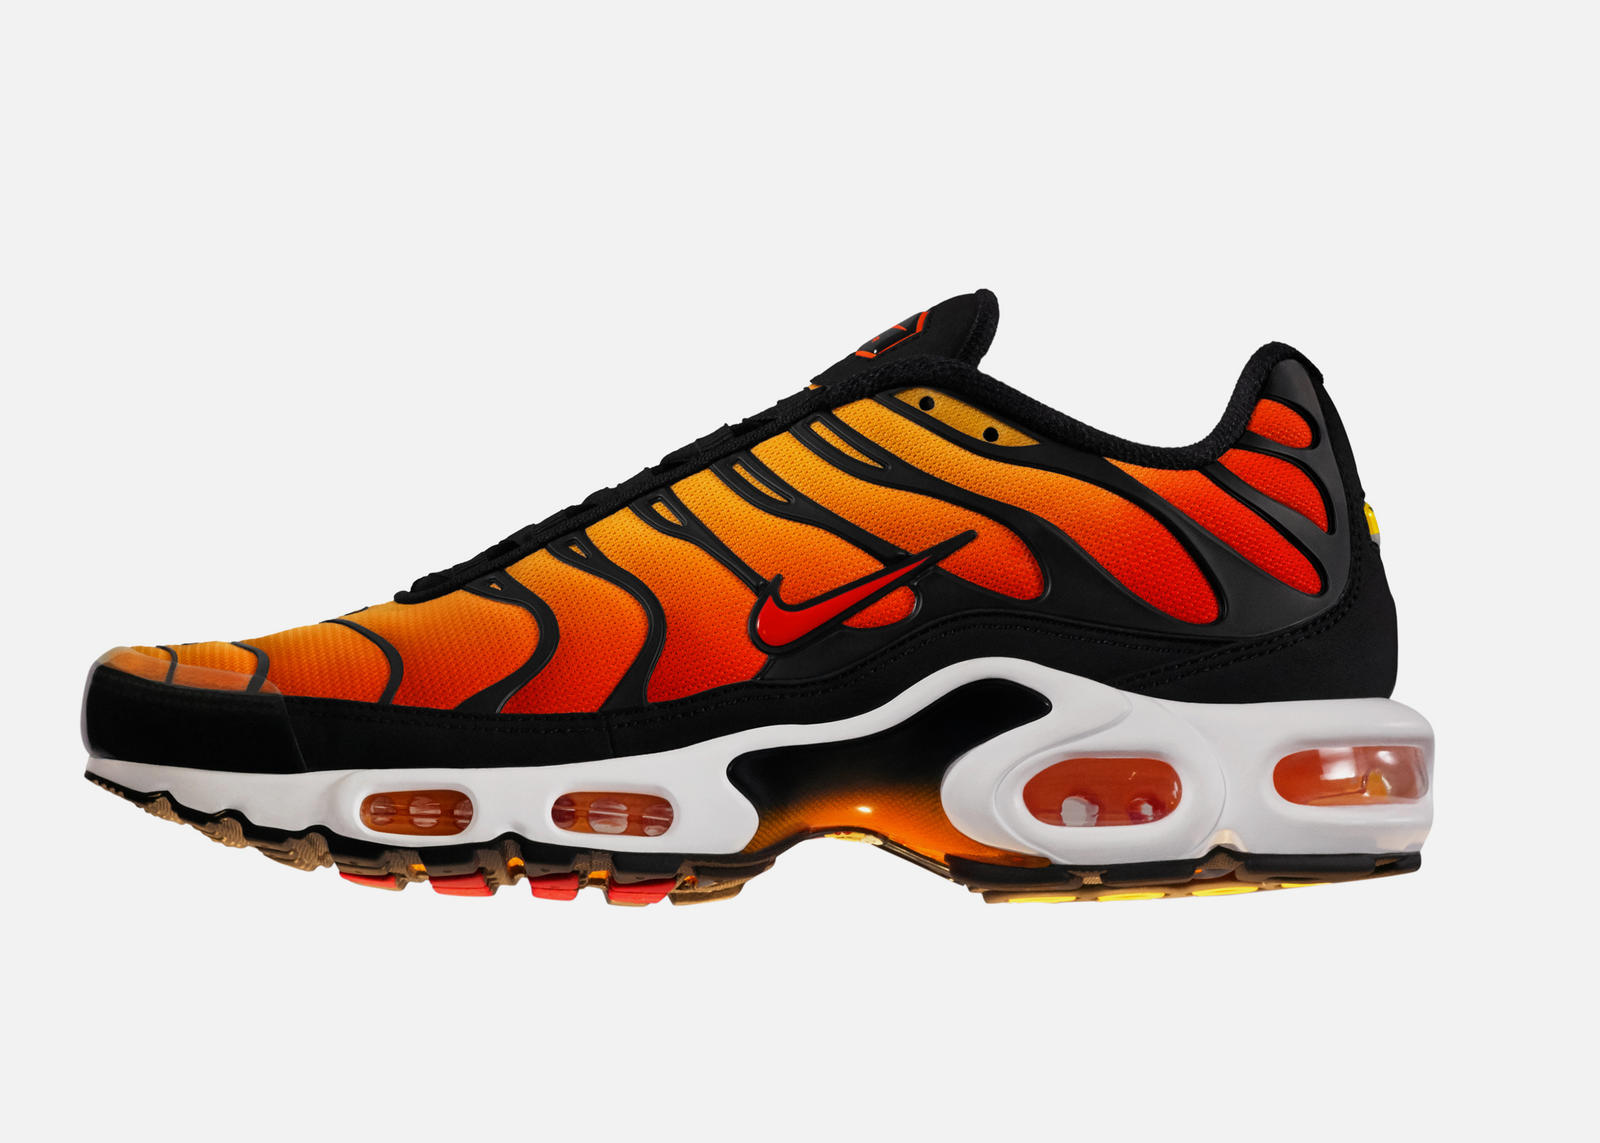 f8b71be3bab The Untold Story of the Nike Air Max Plus 19